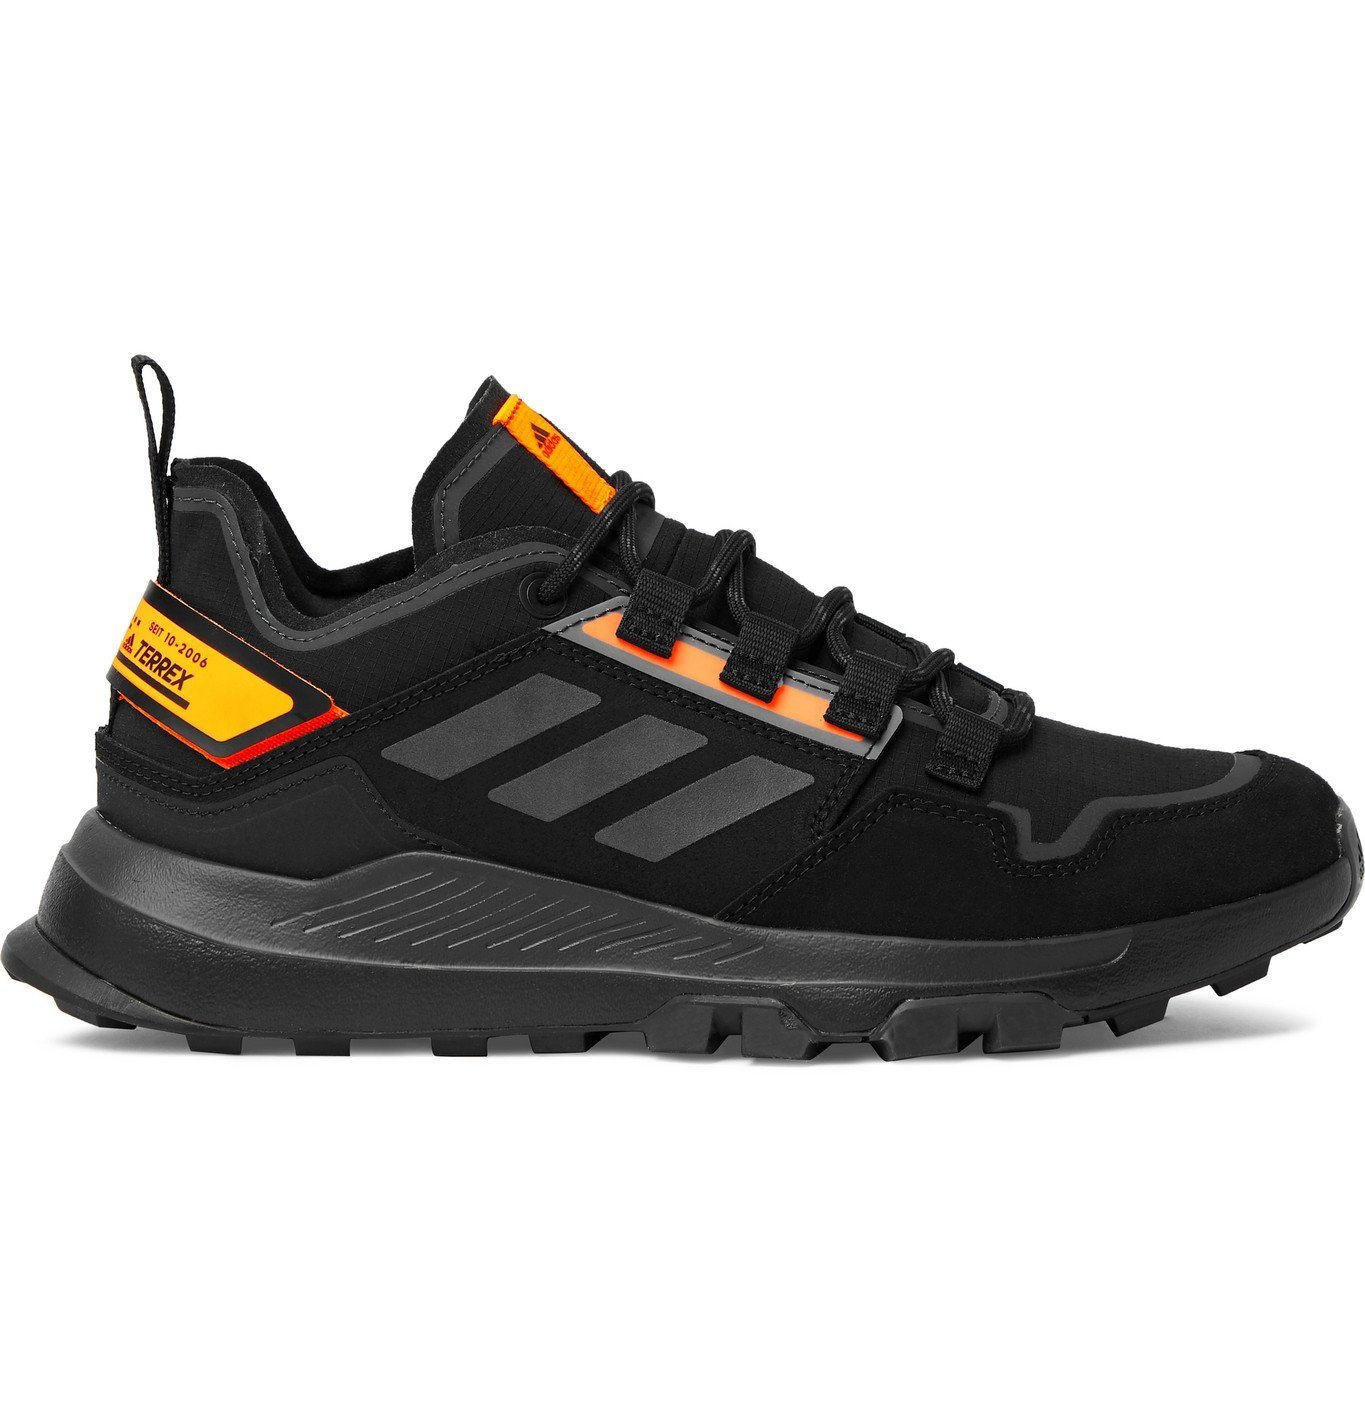 Photo: Adidas Sport - Terrex Hikster Low Ripstop, Suede and Leather Hiking Sneakers - Black